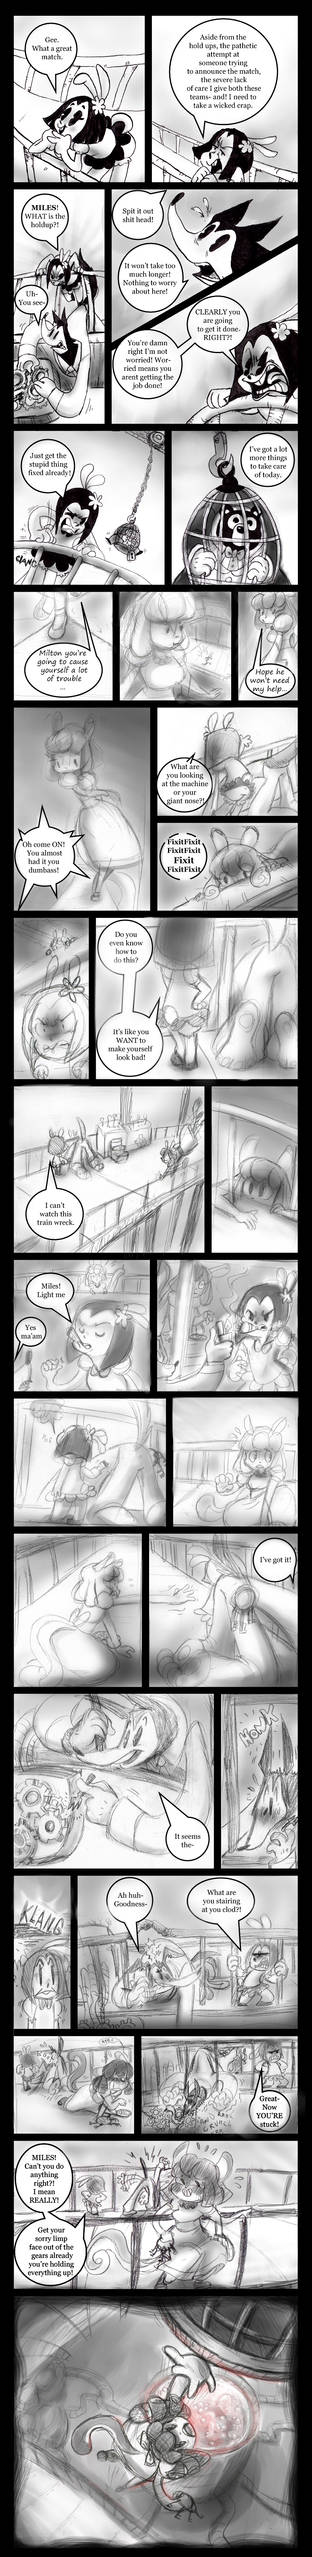 Round 2 Toons Jalapeno Business pg 9